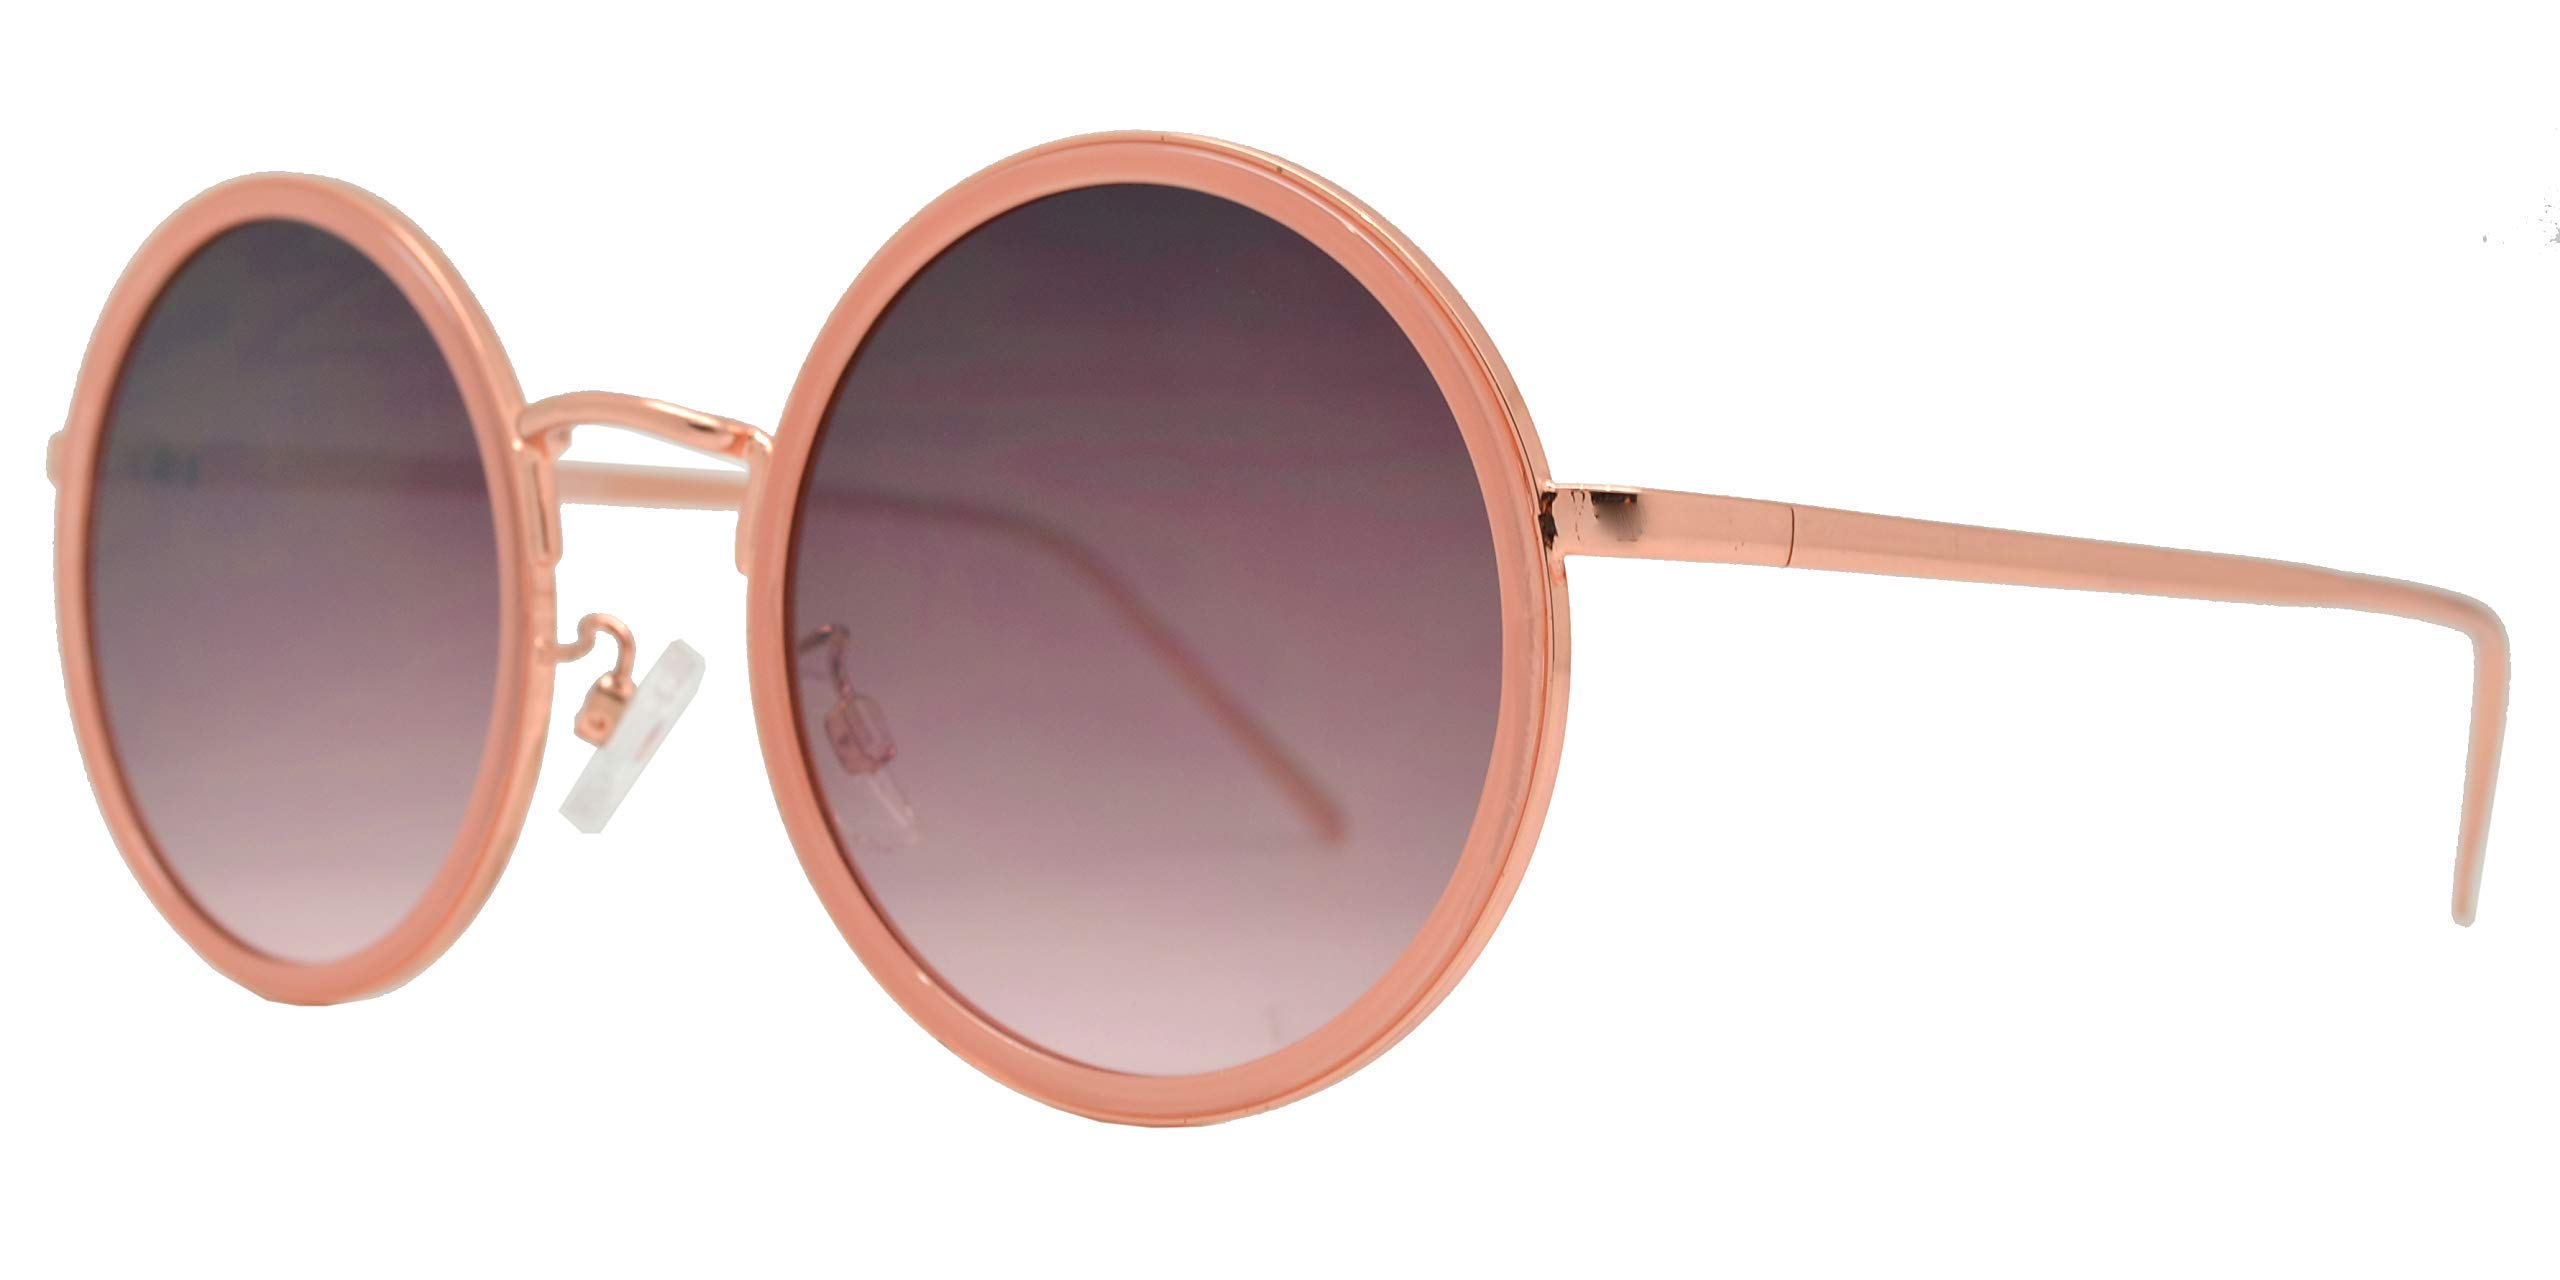 Froya Round Circle Sunglasses Retro Vintage Inspired Style Women (Pink + Pink Smoke) by Froya